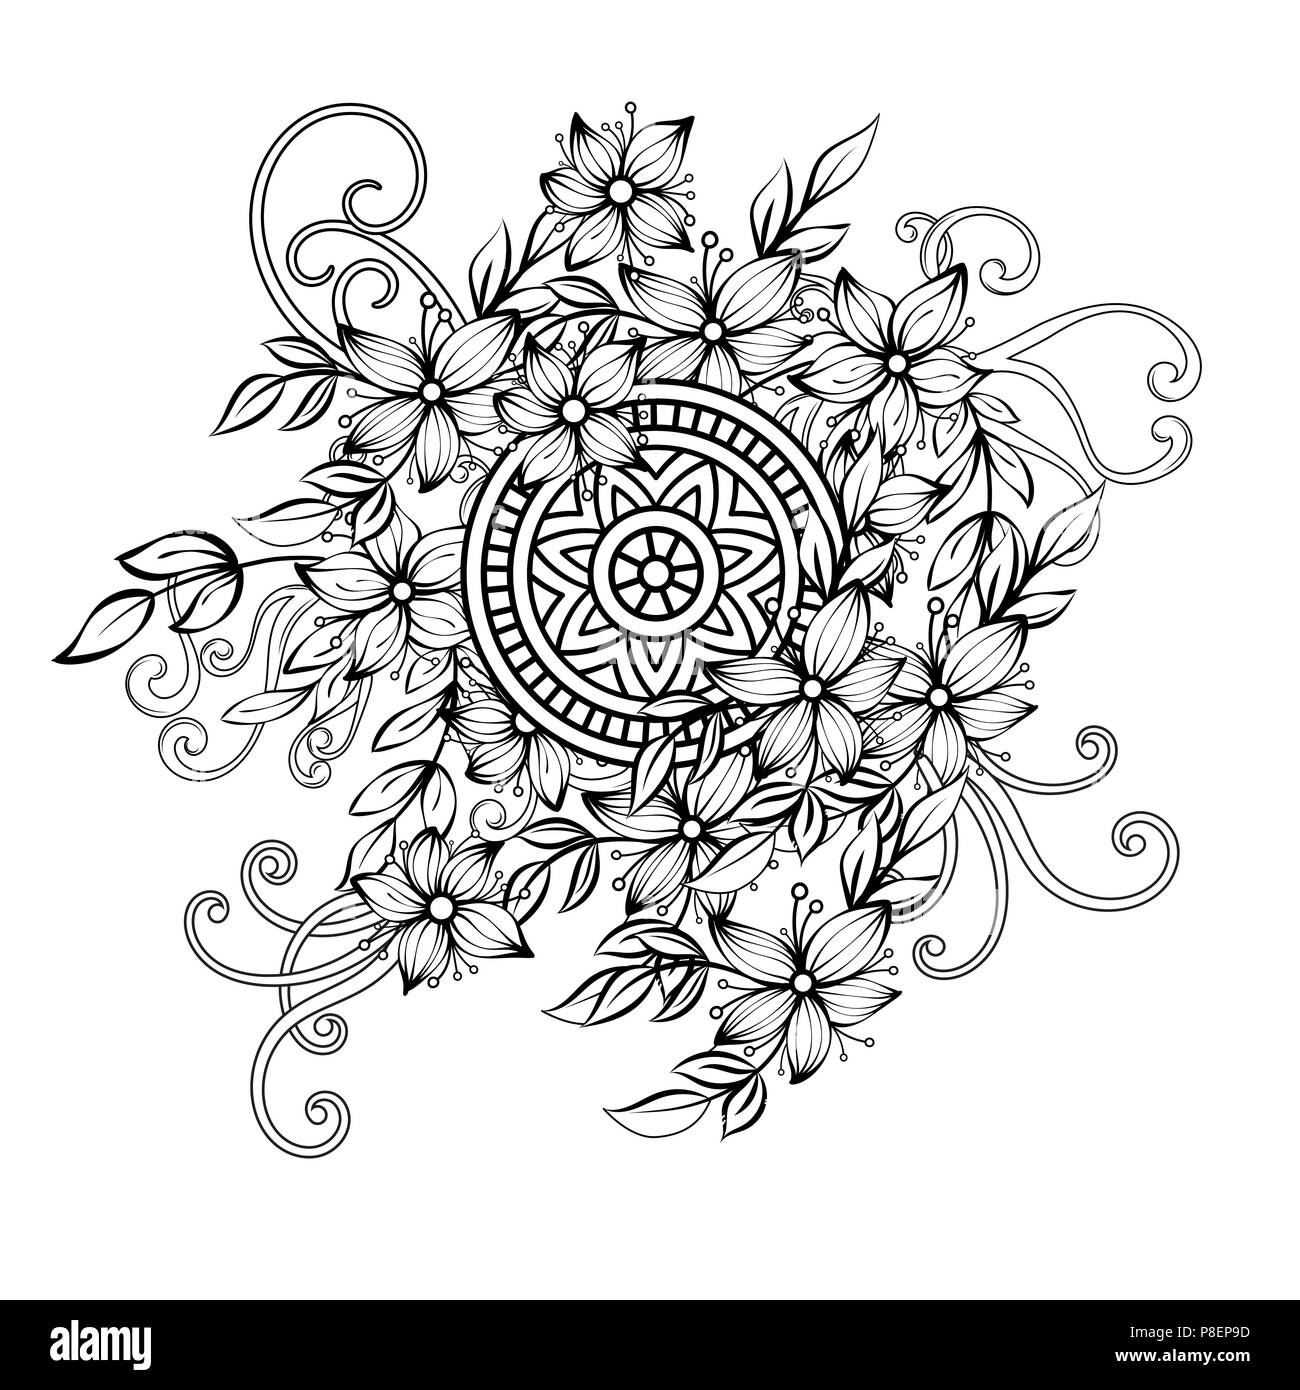 46 Stress Coloring Book Page Picture HD